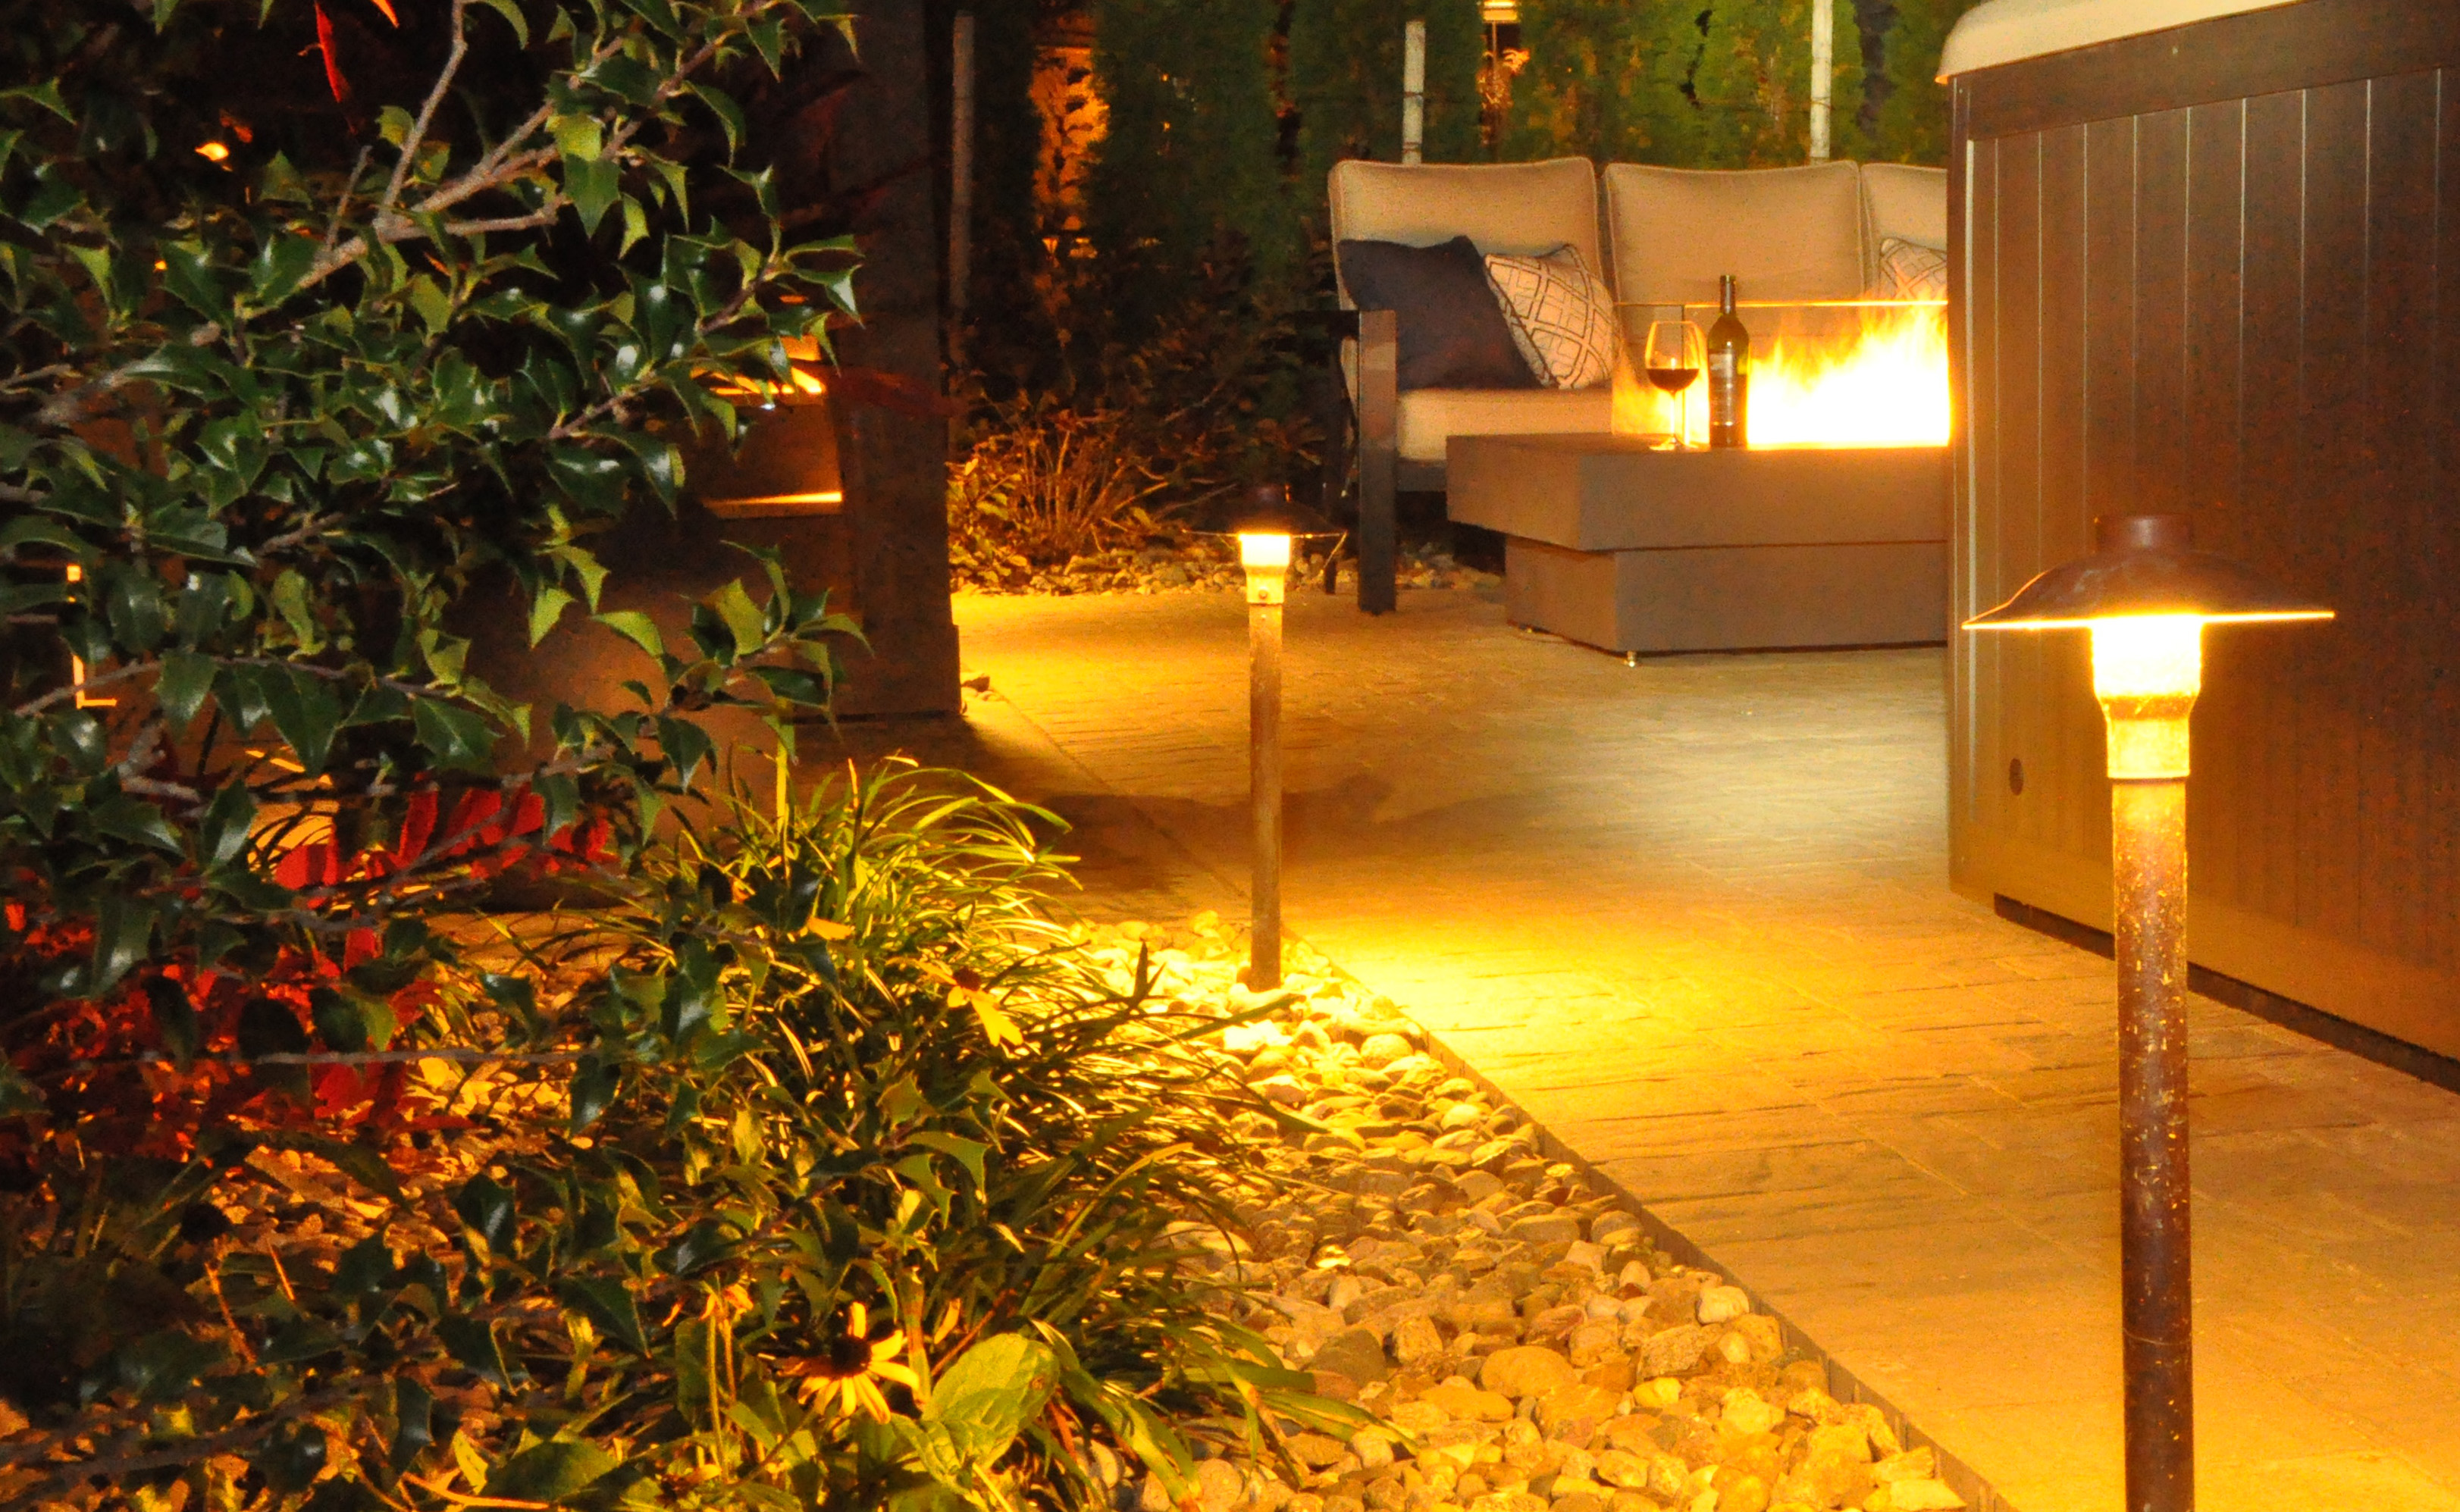 Professionally designed fire pits and lighting add elegance to the landscape.